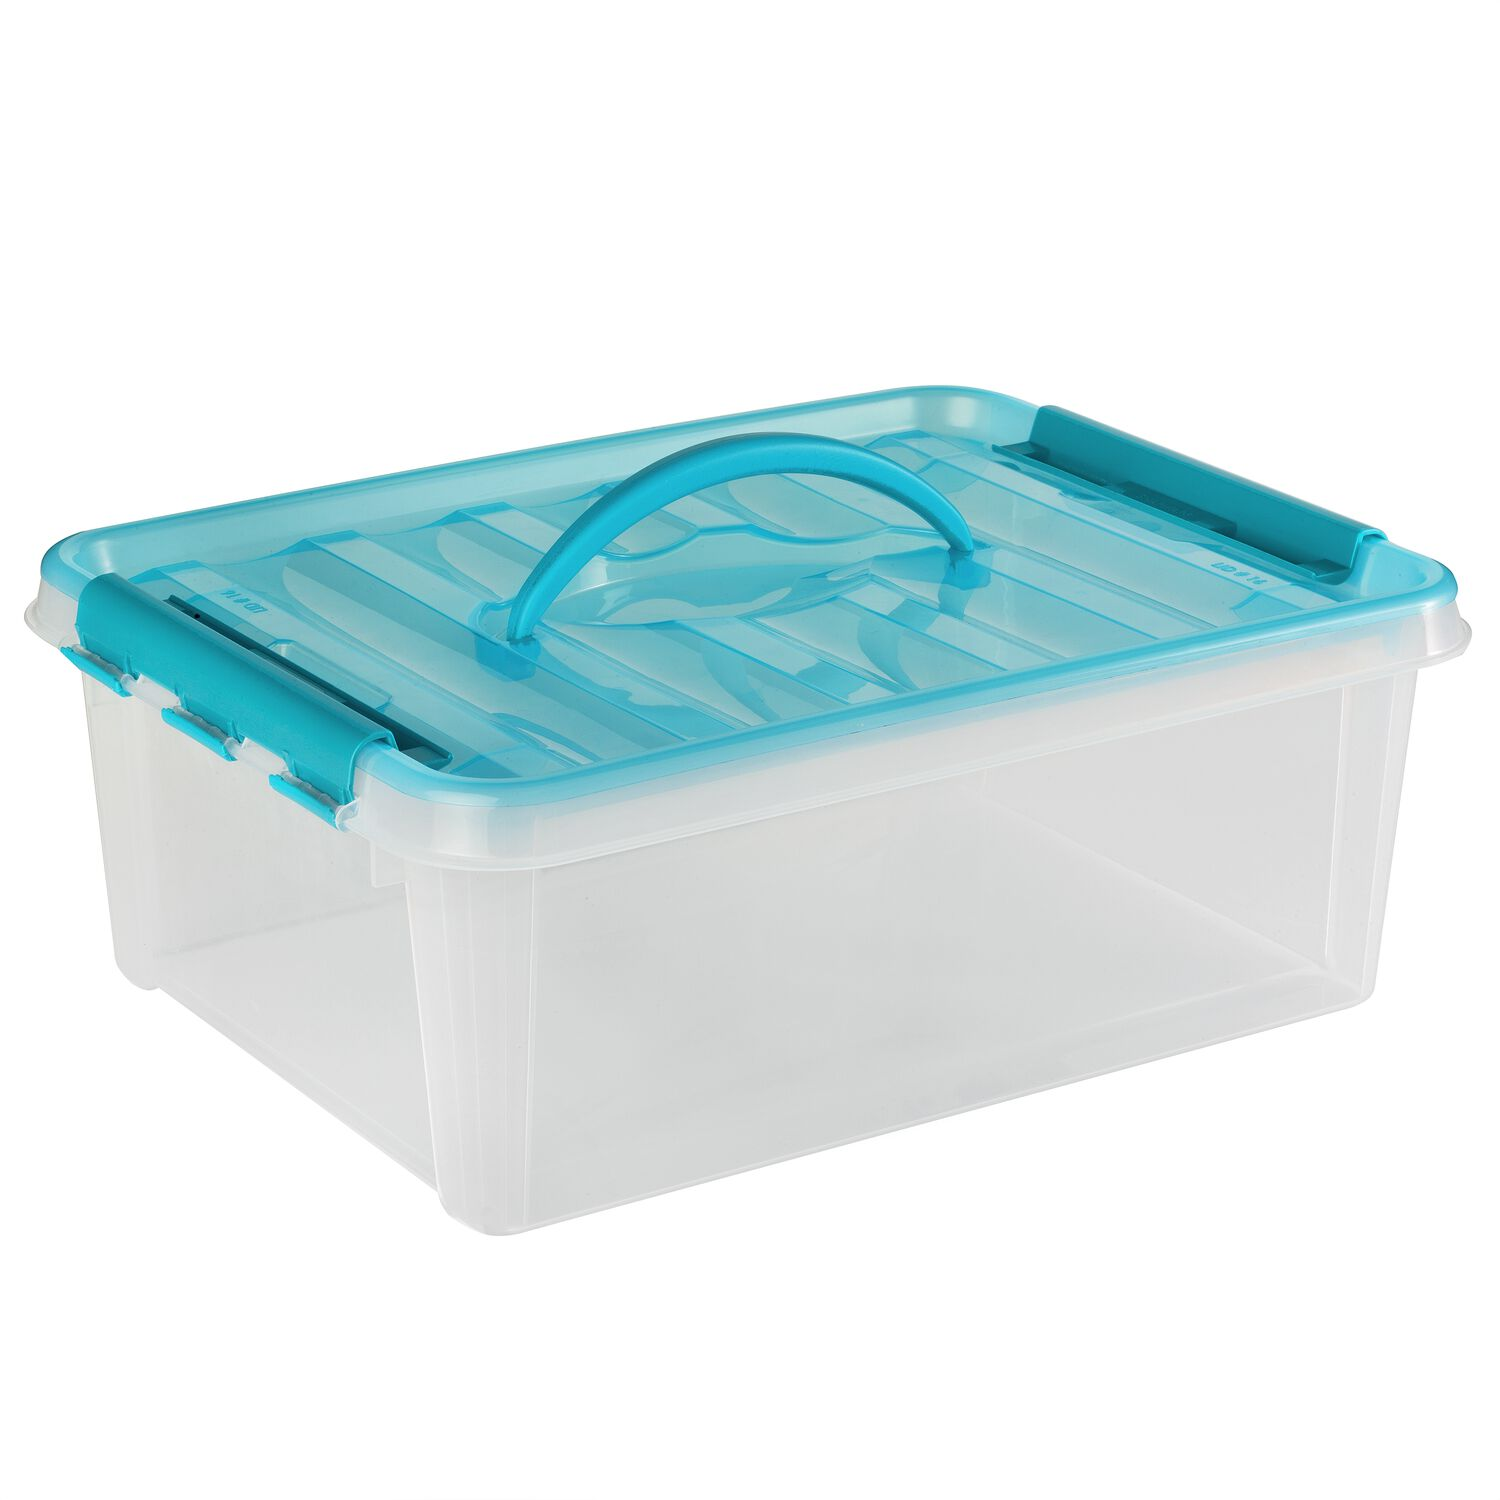 Snapware smart store 16 x 6 home storage container w for Container en francais